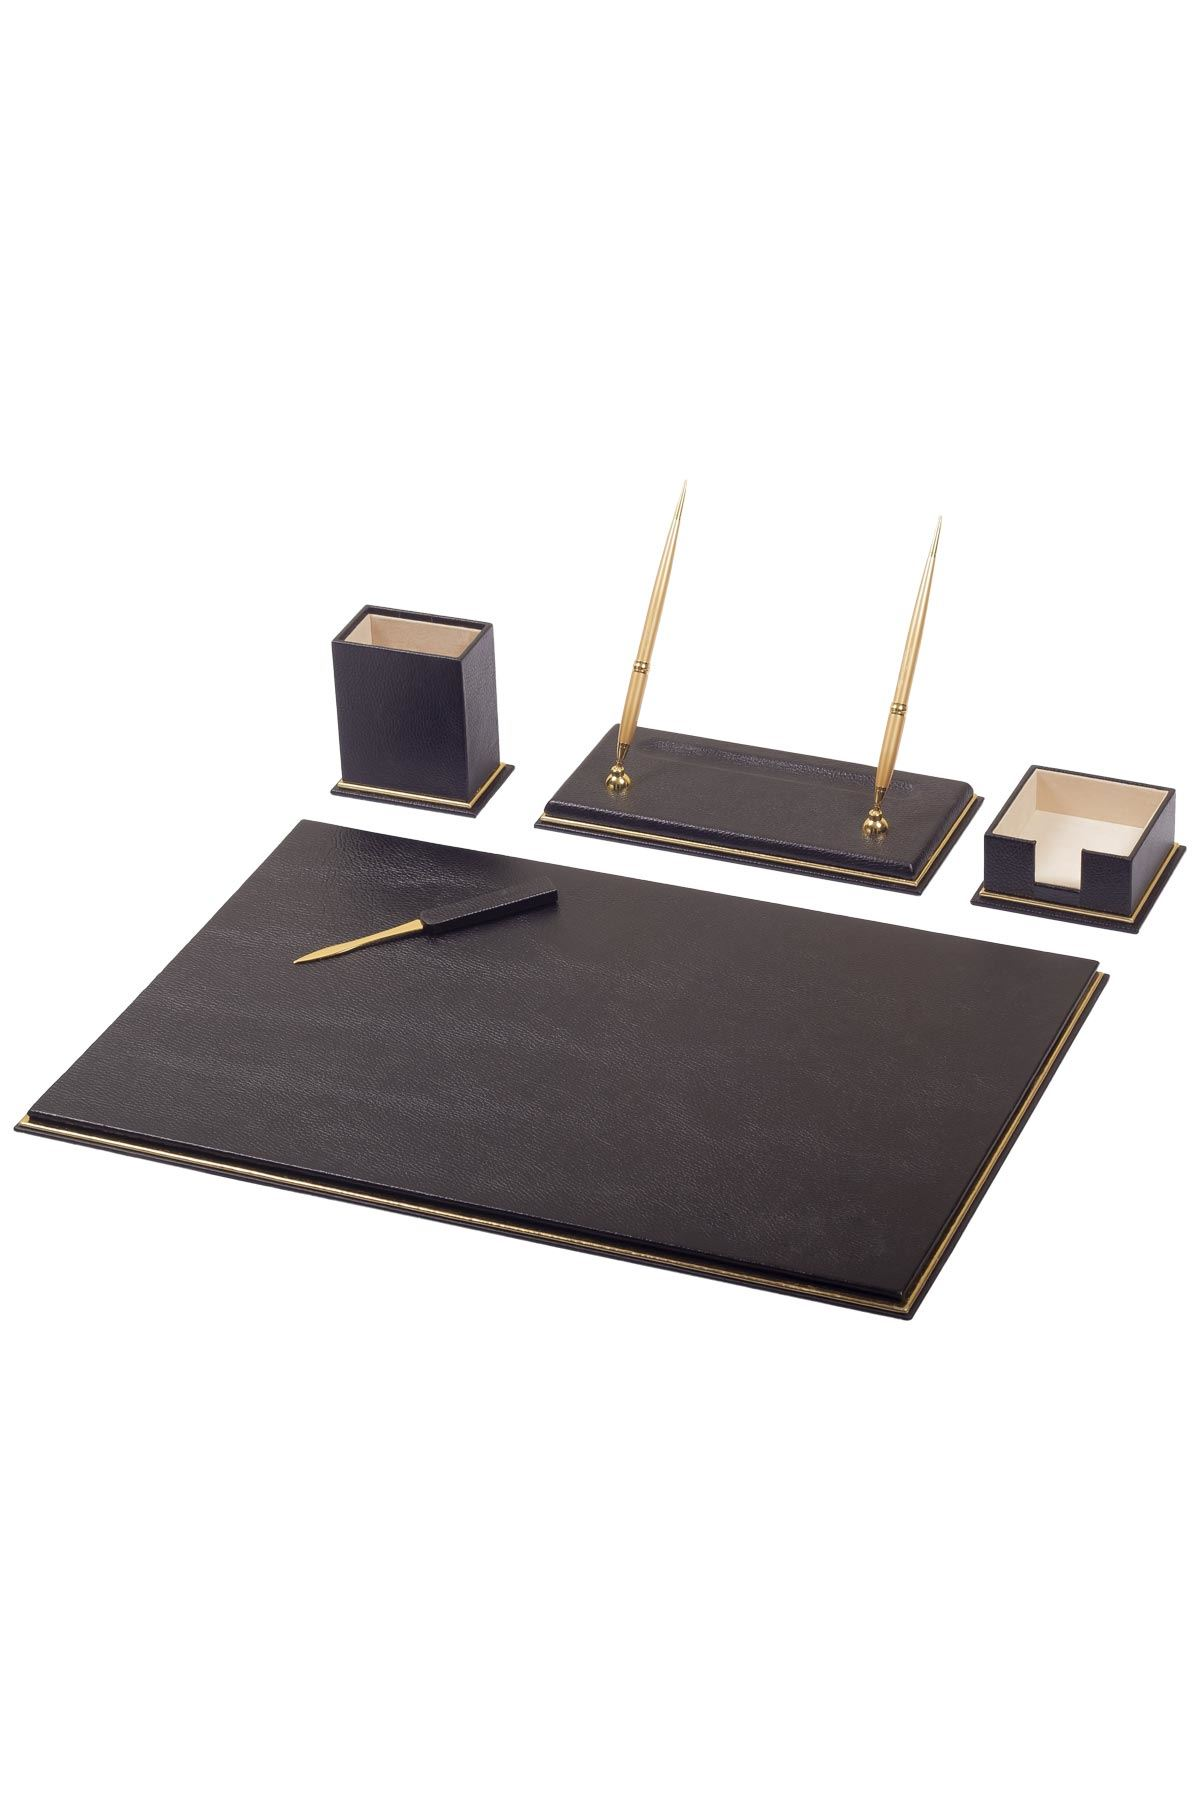 Real Cow Leather Desk Set 7 Accessories